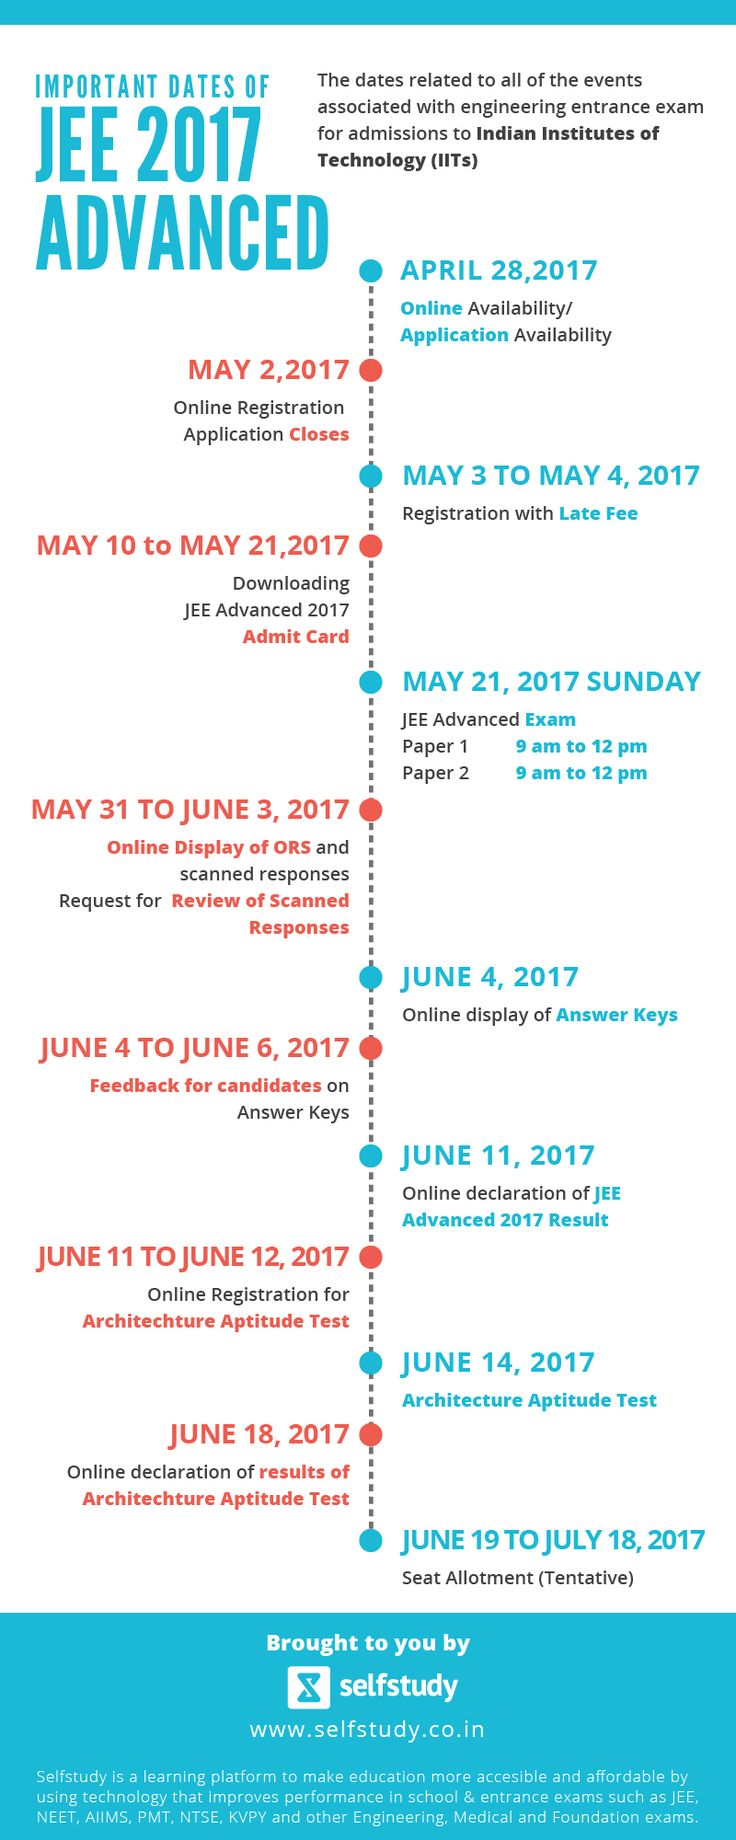 JEE Advanced 2017 Important Dates lists out the dates relating to the Joint Entrance Examination (JEE) Advanced as announced by IIT Madras.